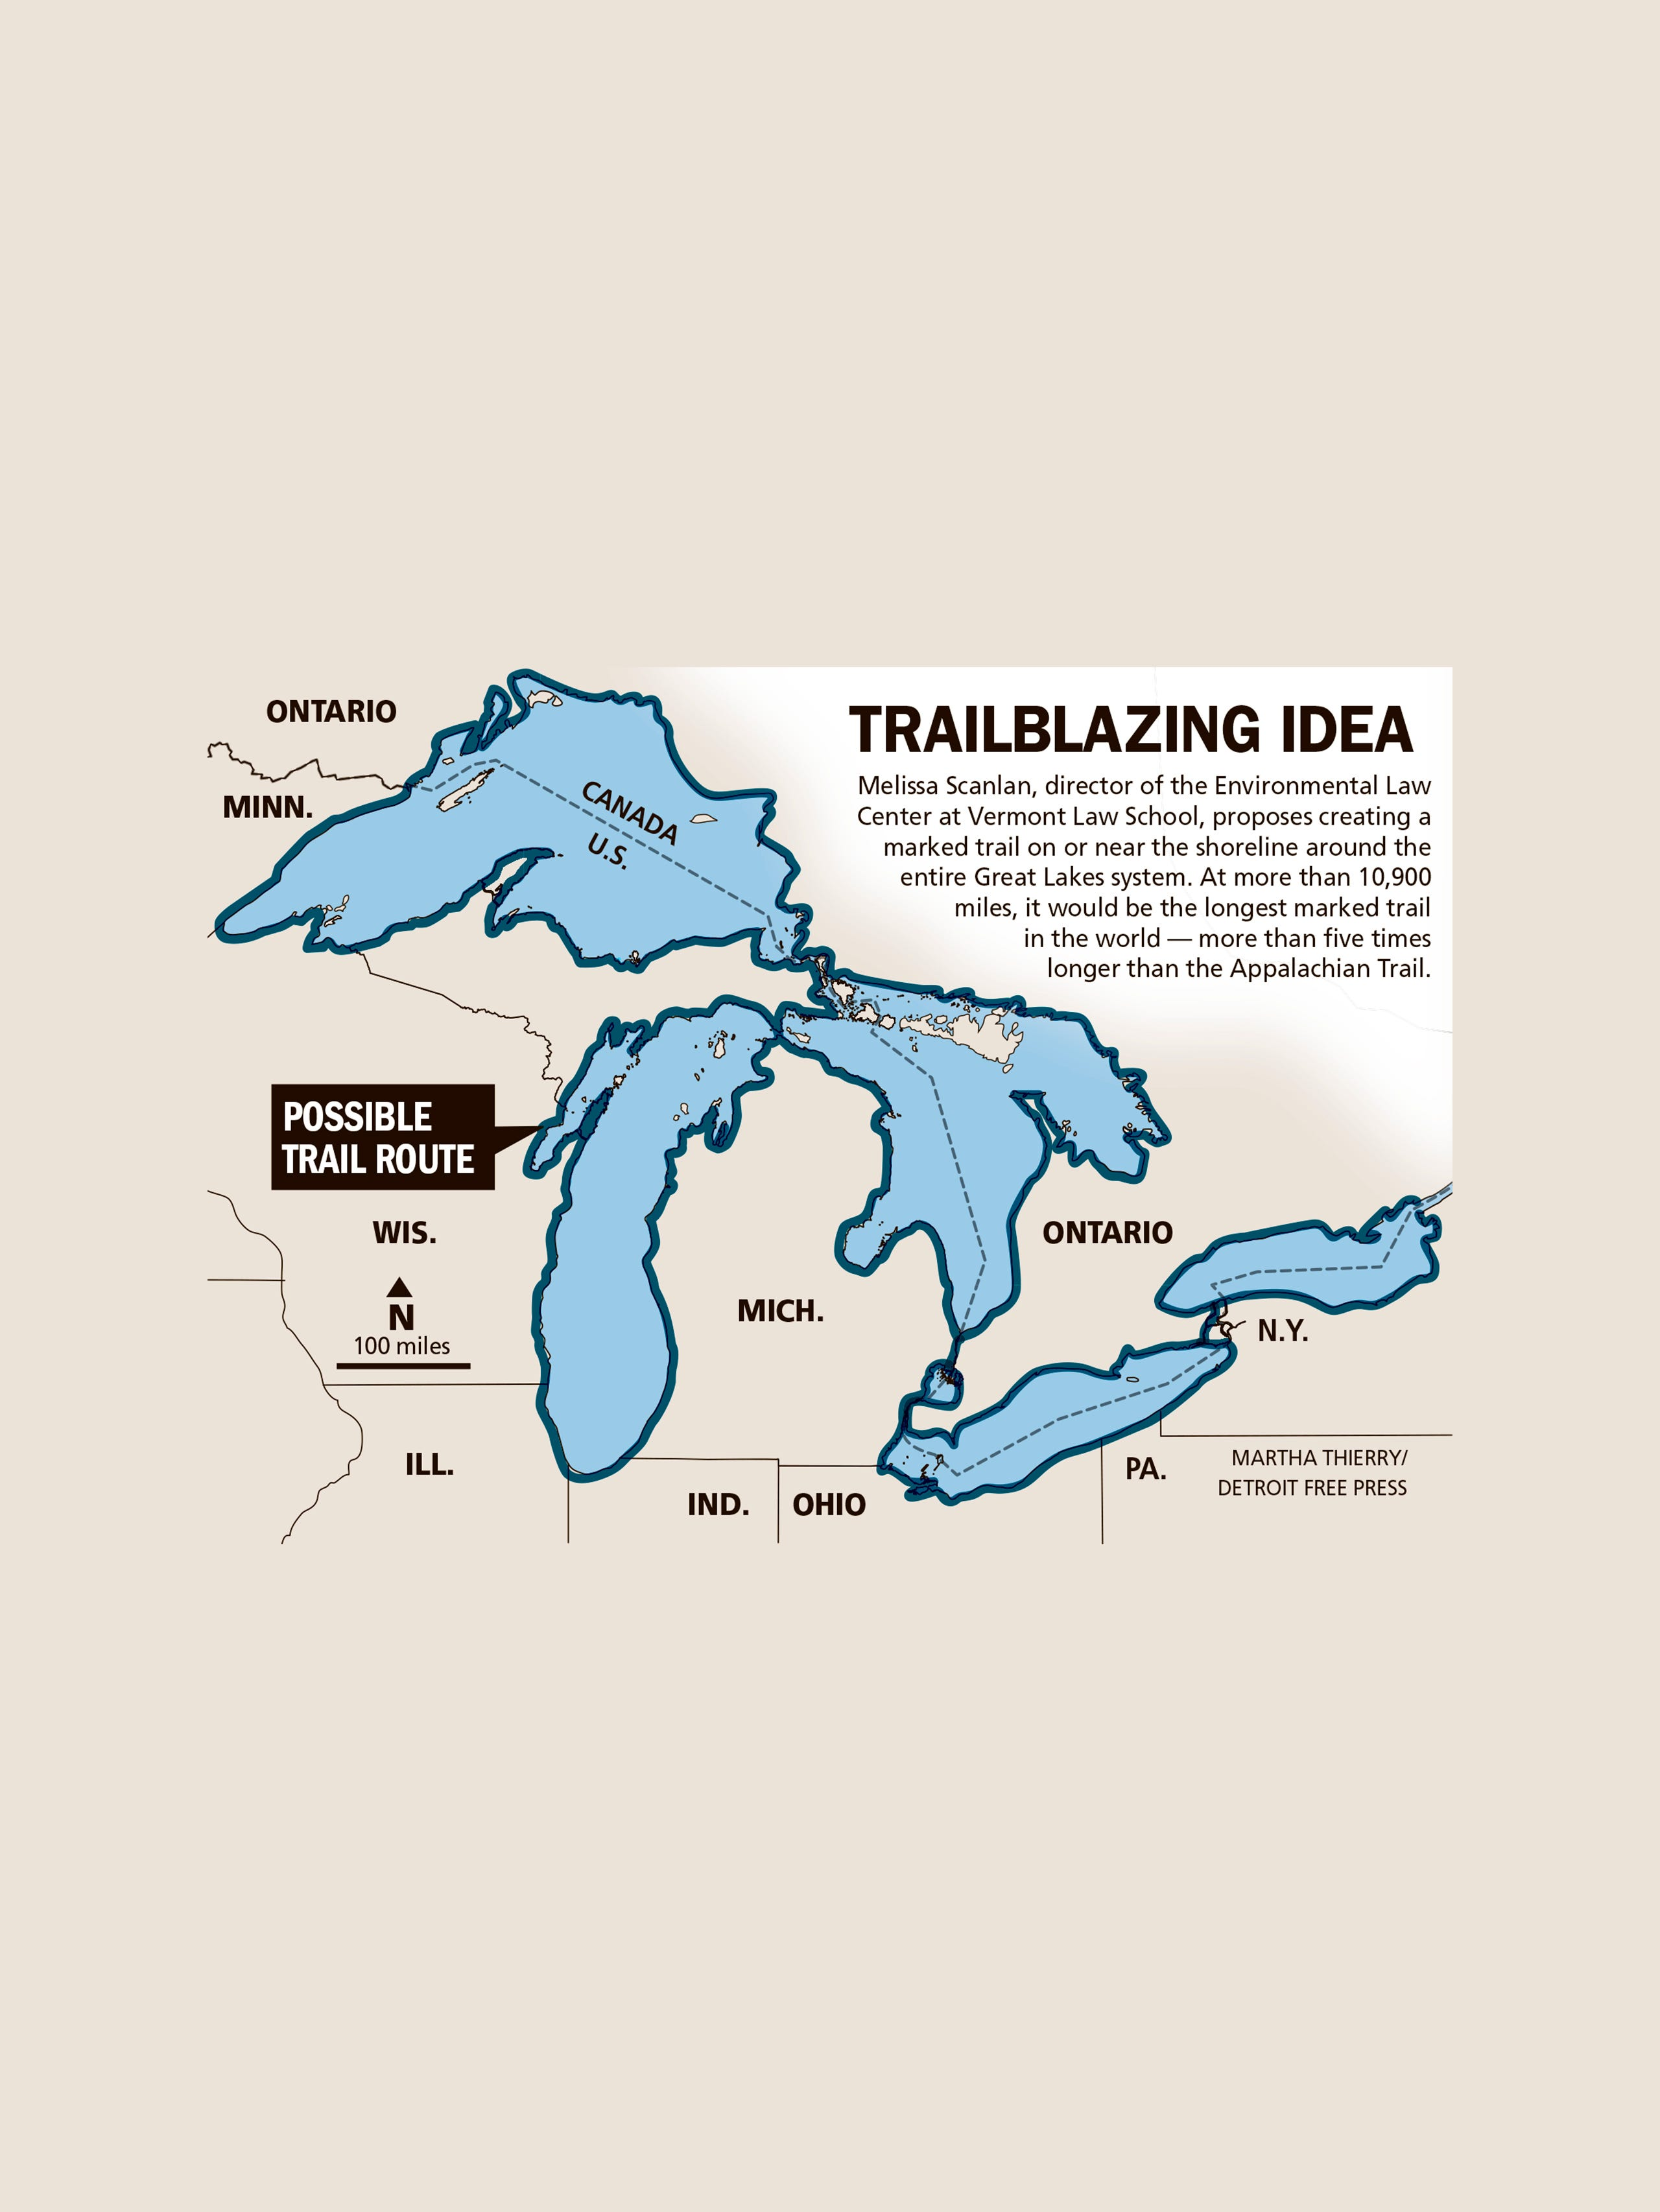 Worlds longest marked trail proposed around Great Lakes